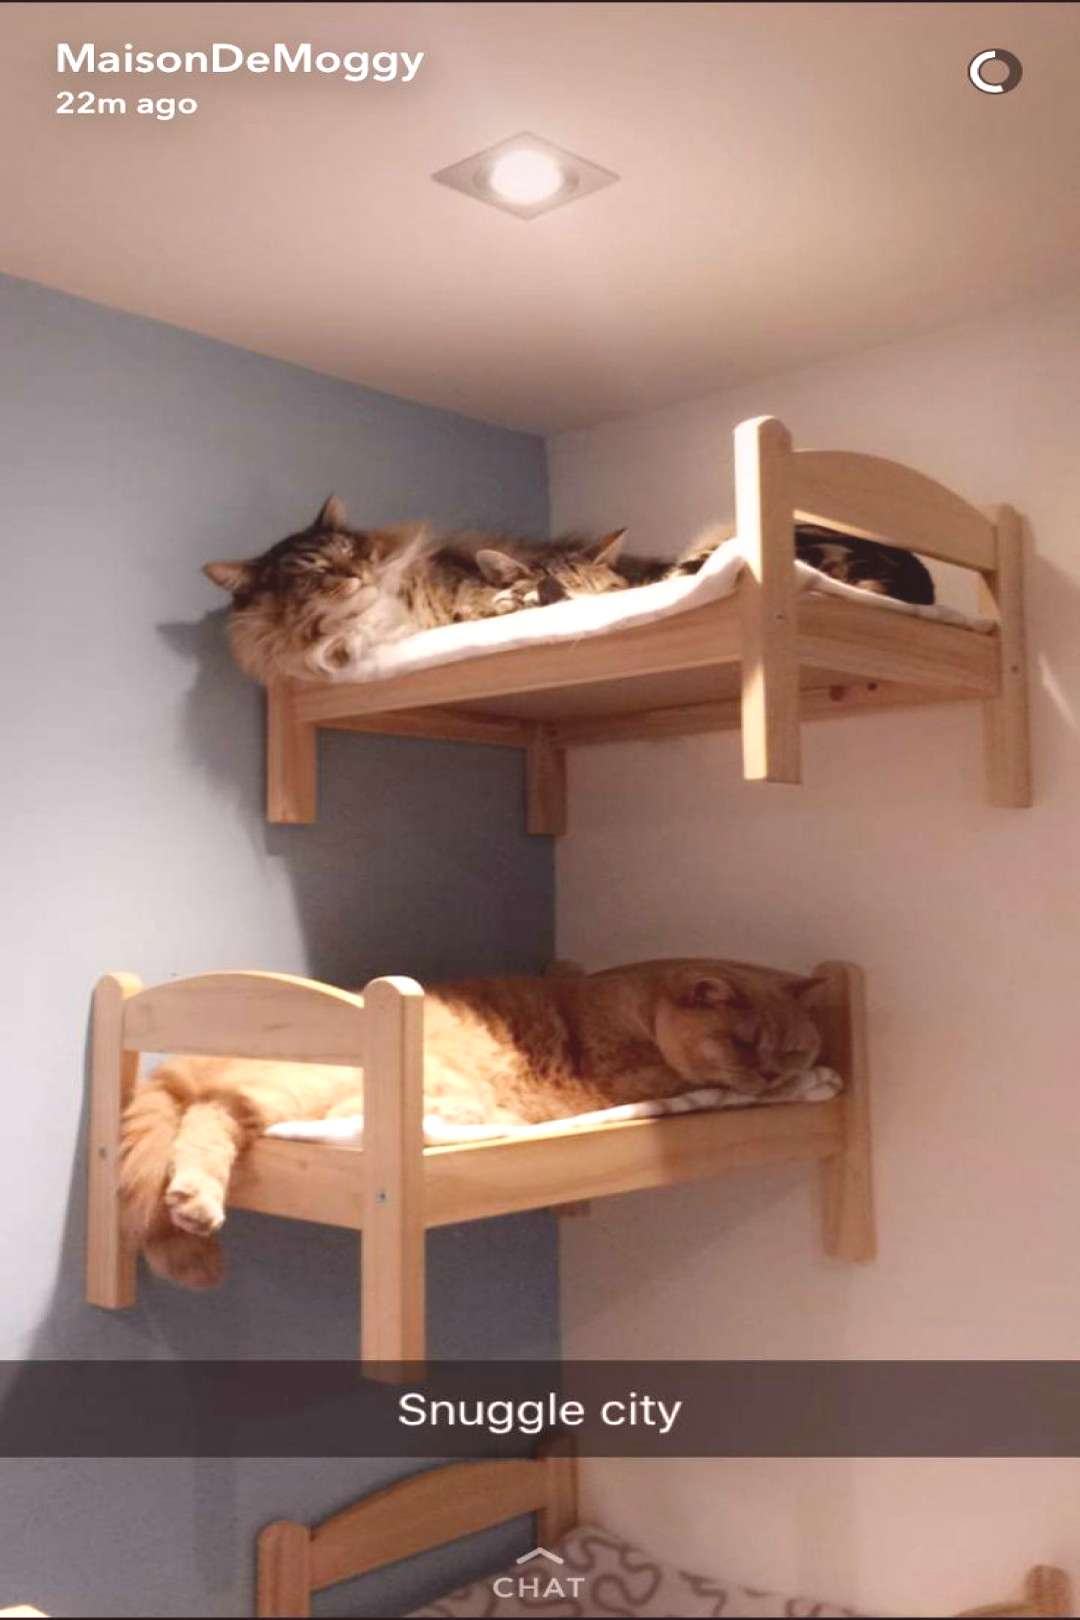 Snuggle city.   HOW CUTE!!!  Our cats loved cat shelves when we had them.  I've seen beds like thes